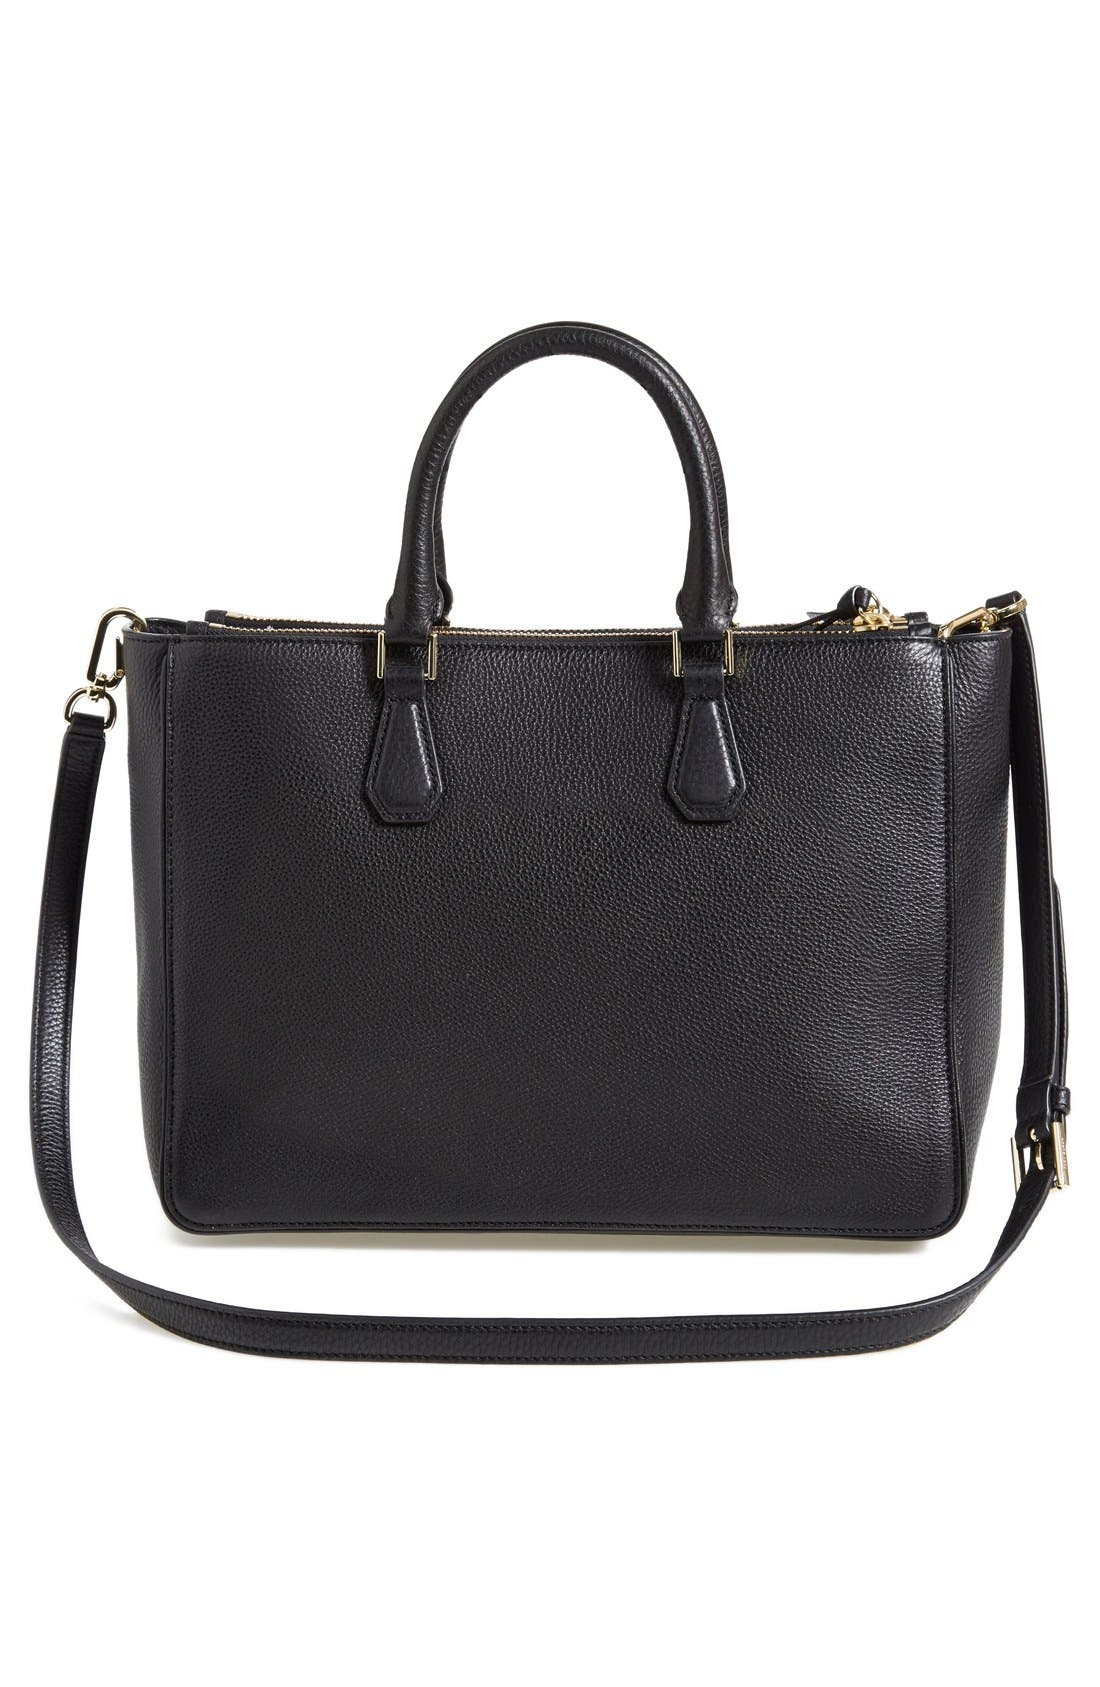 Alternate Image 3  - Tory Burch 'Robinson' Pebbled Leather Double Zip Tote